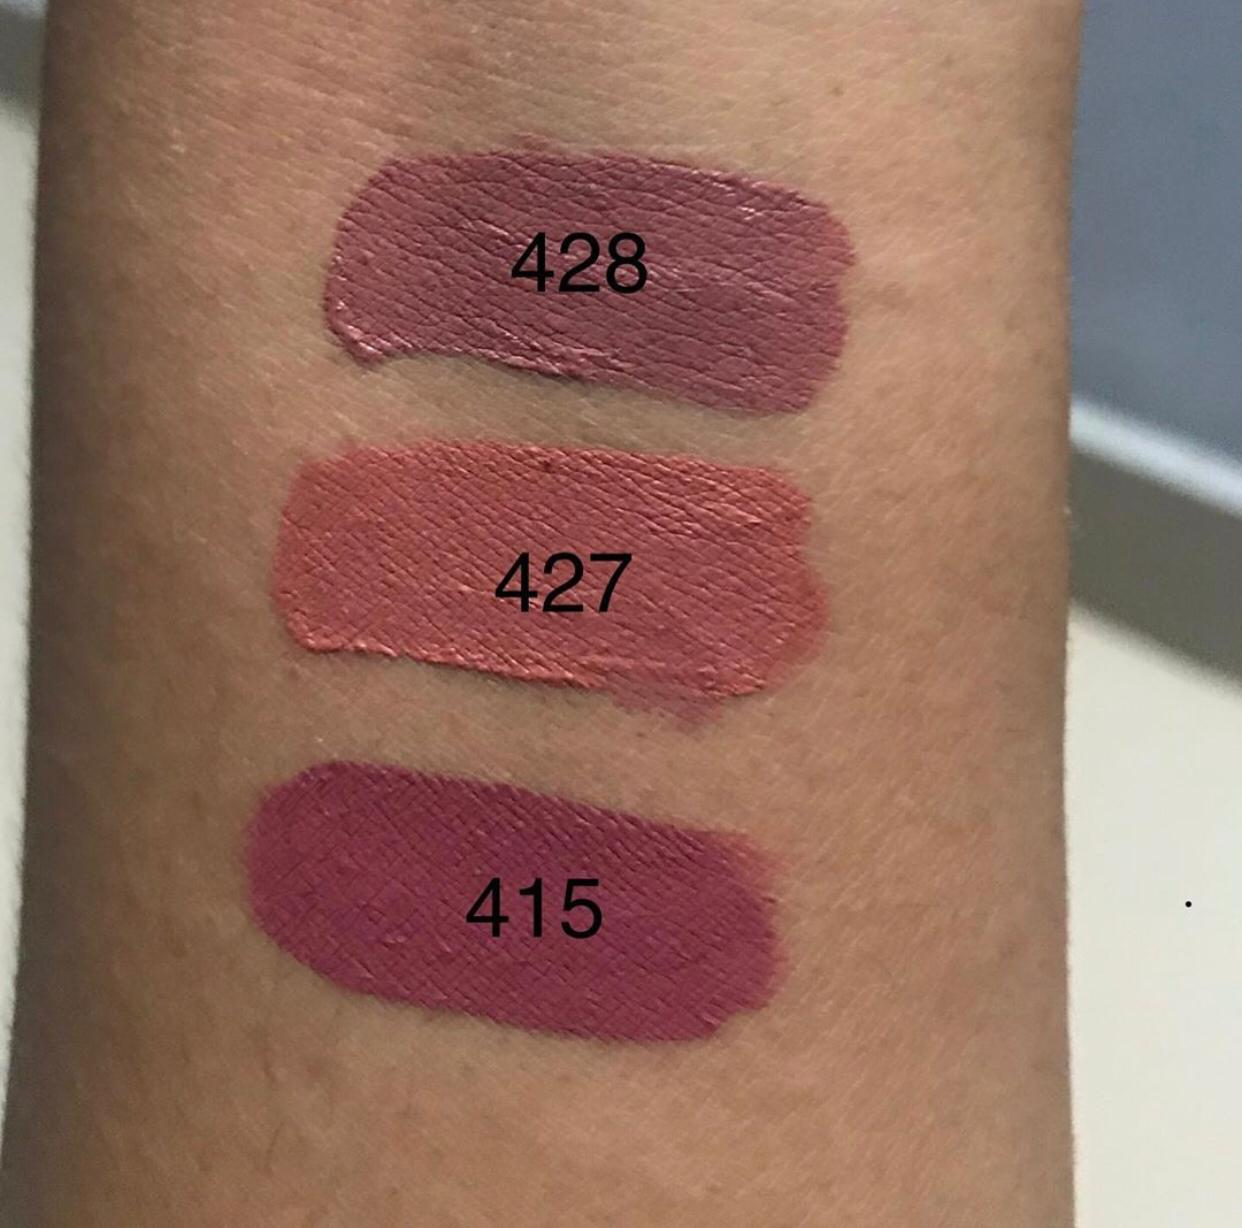 Incolor Matte Me Ultra Smooth Matte Lip Cream-Super product wid great price-By sarika_singh-2